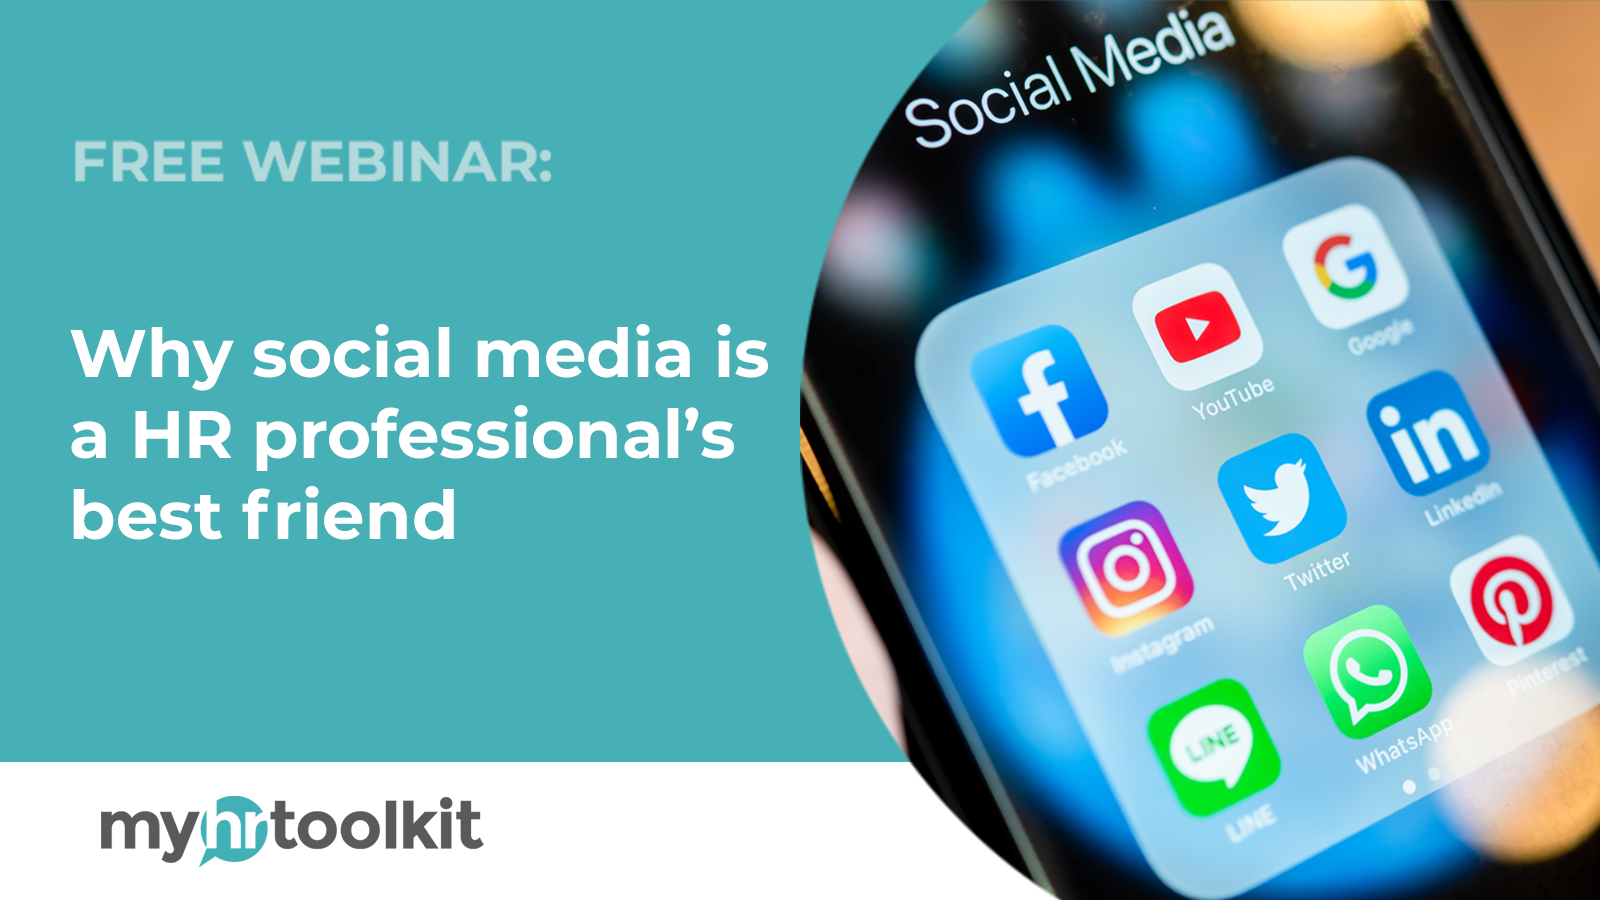 Why social media is a HR professional's best friend